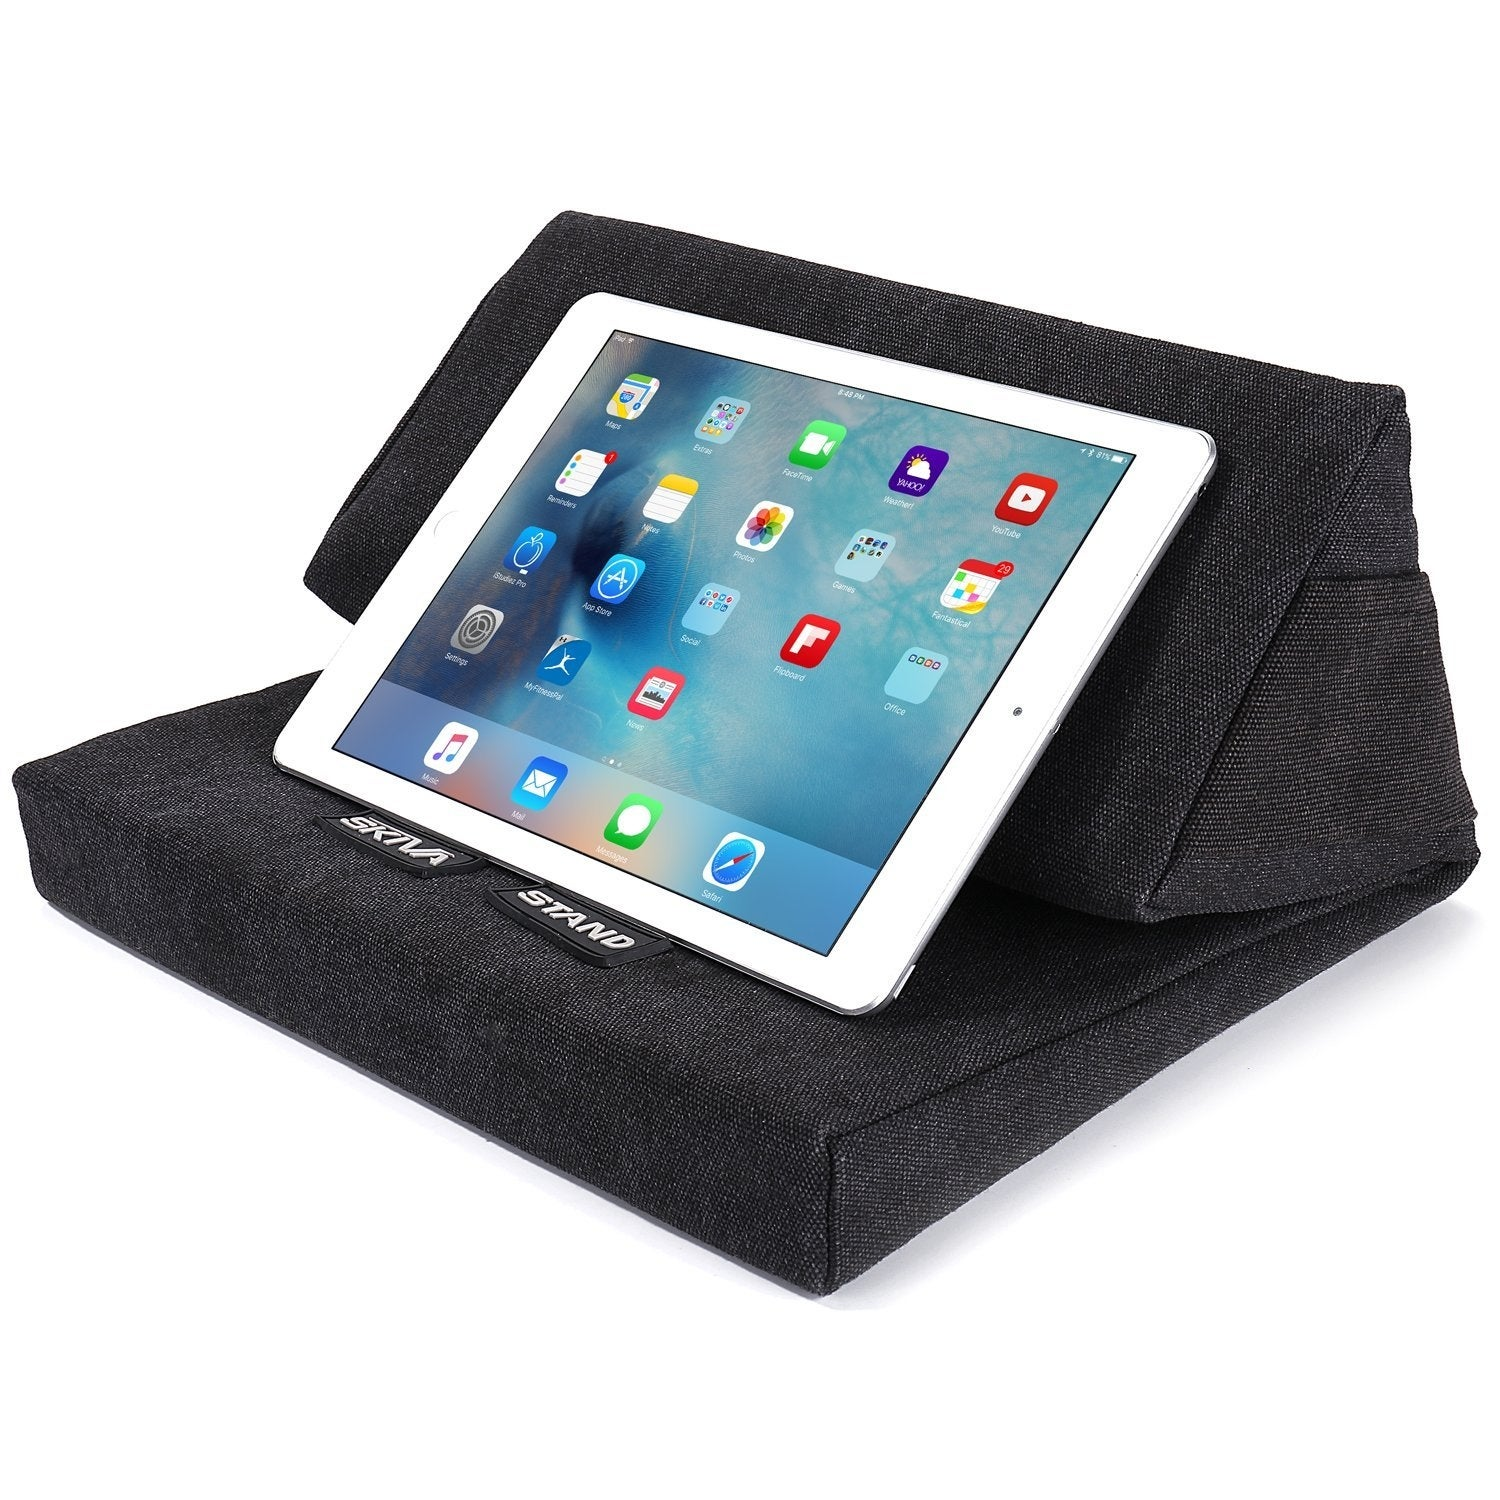 Skiva EasyStand Pad Pillow Stand for iPad Pro Air mini, iPad 4 3 2 1, Samsung Galaxy Tab Note 10.1, Google Nexus 7, E-readers